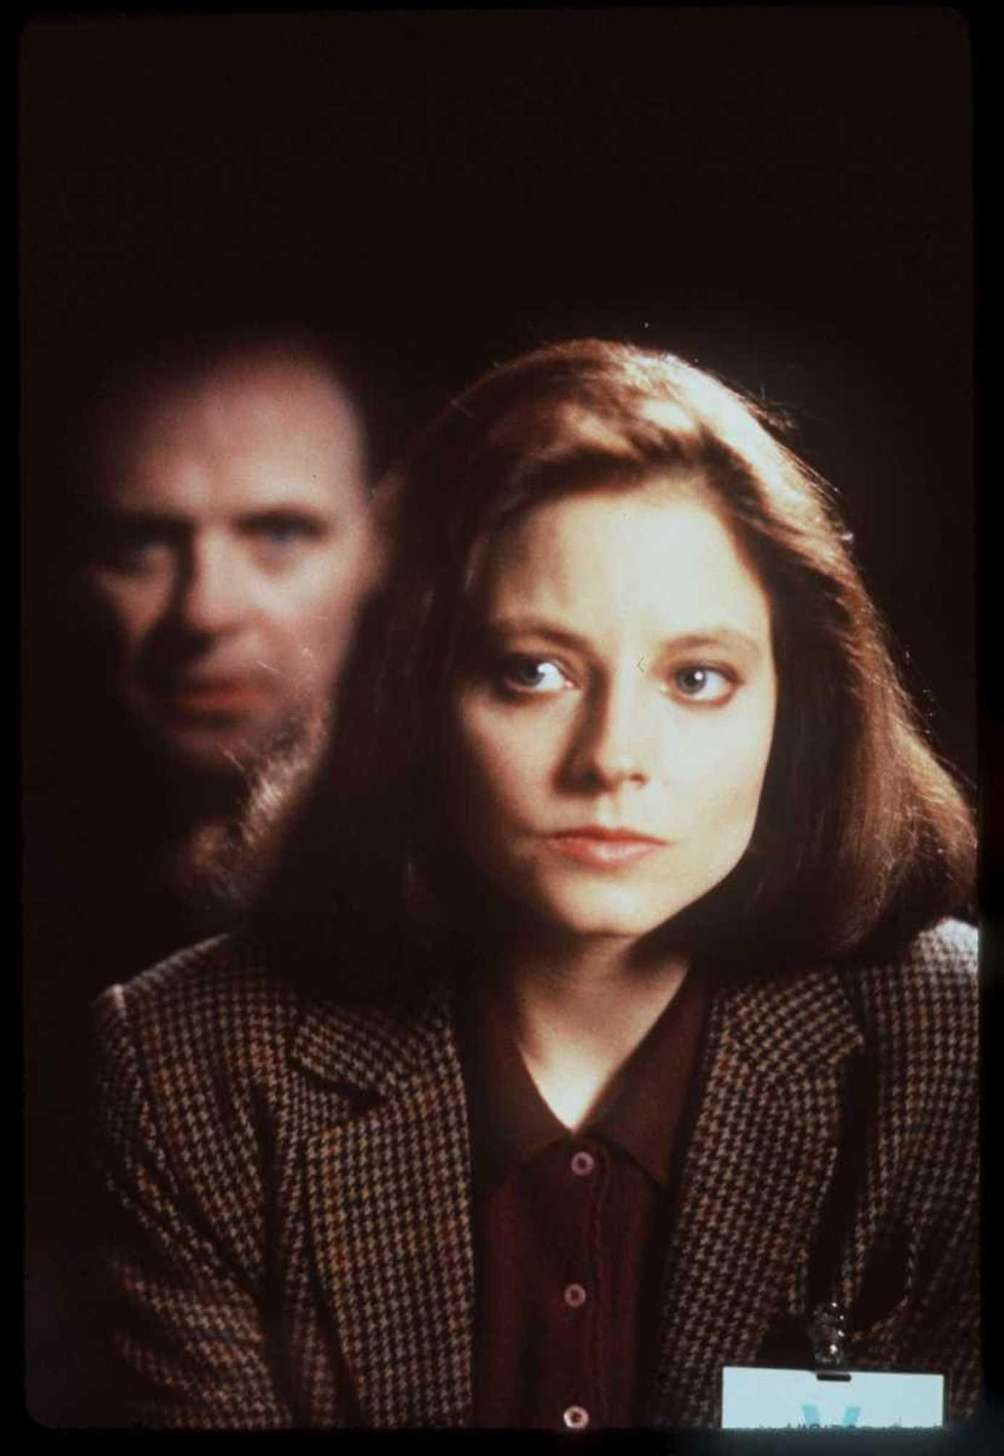 Sir Anthony Hopkins and Jodie Foster, in a